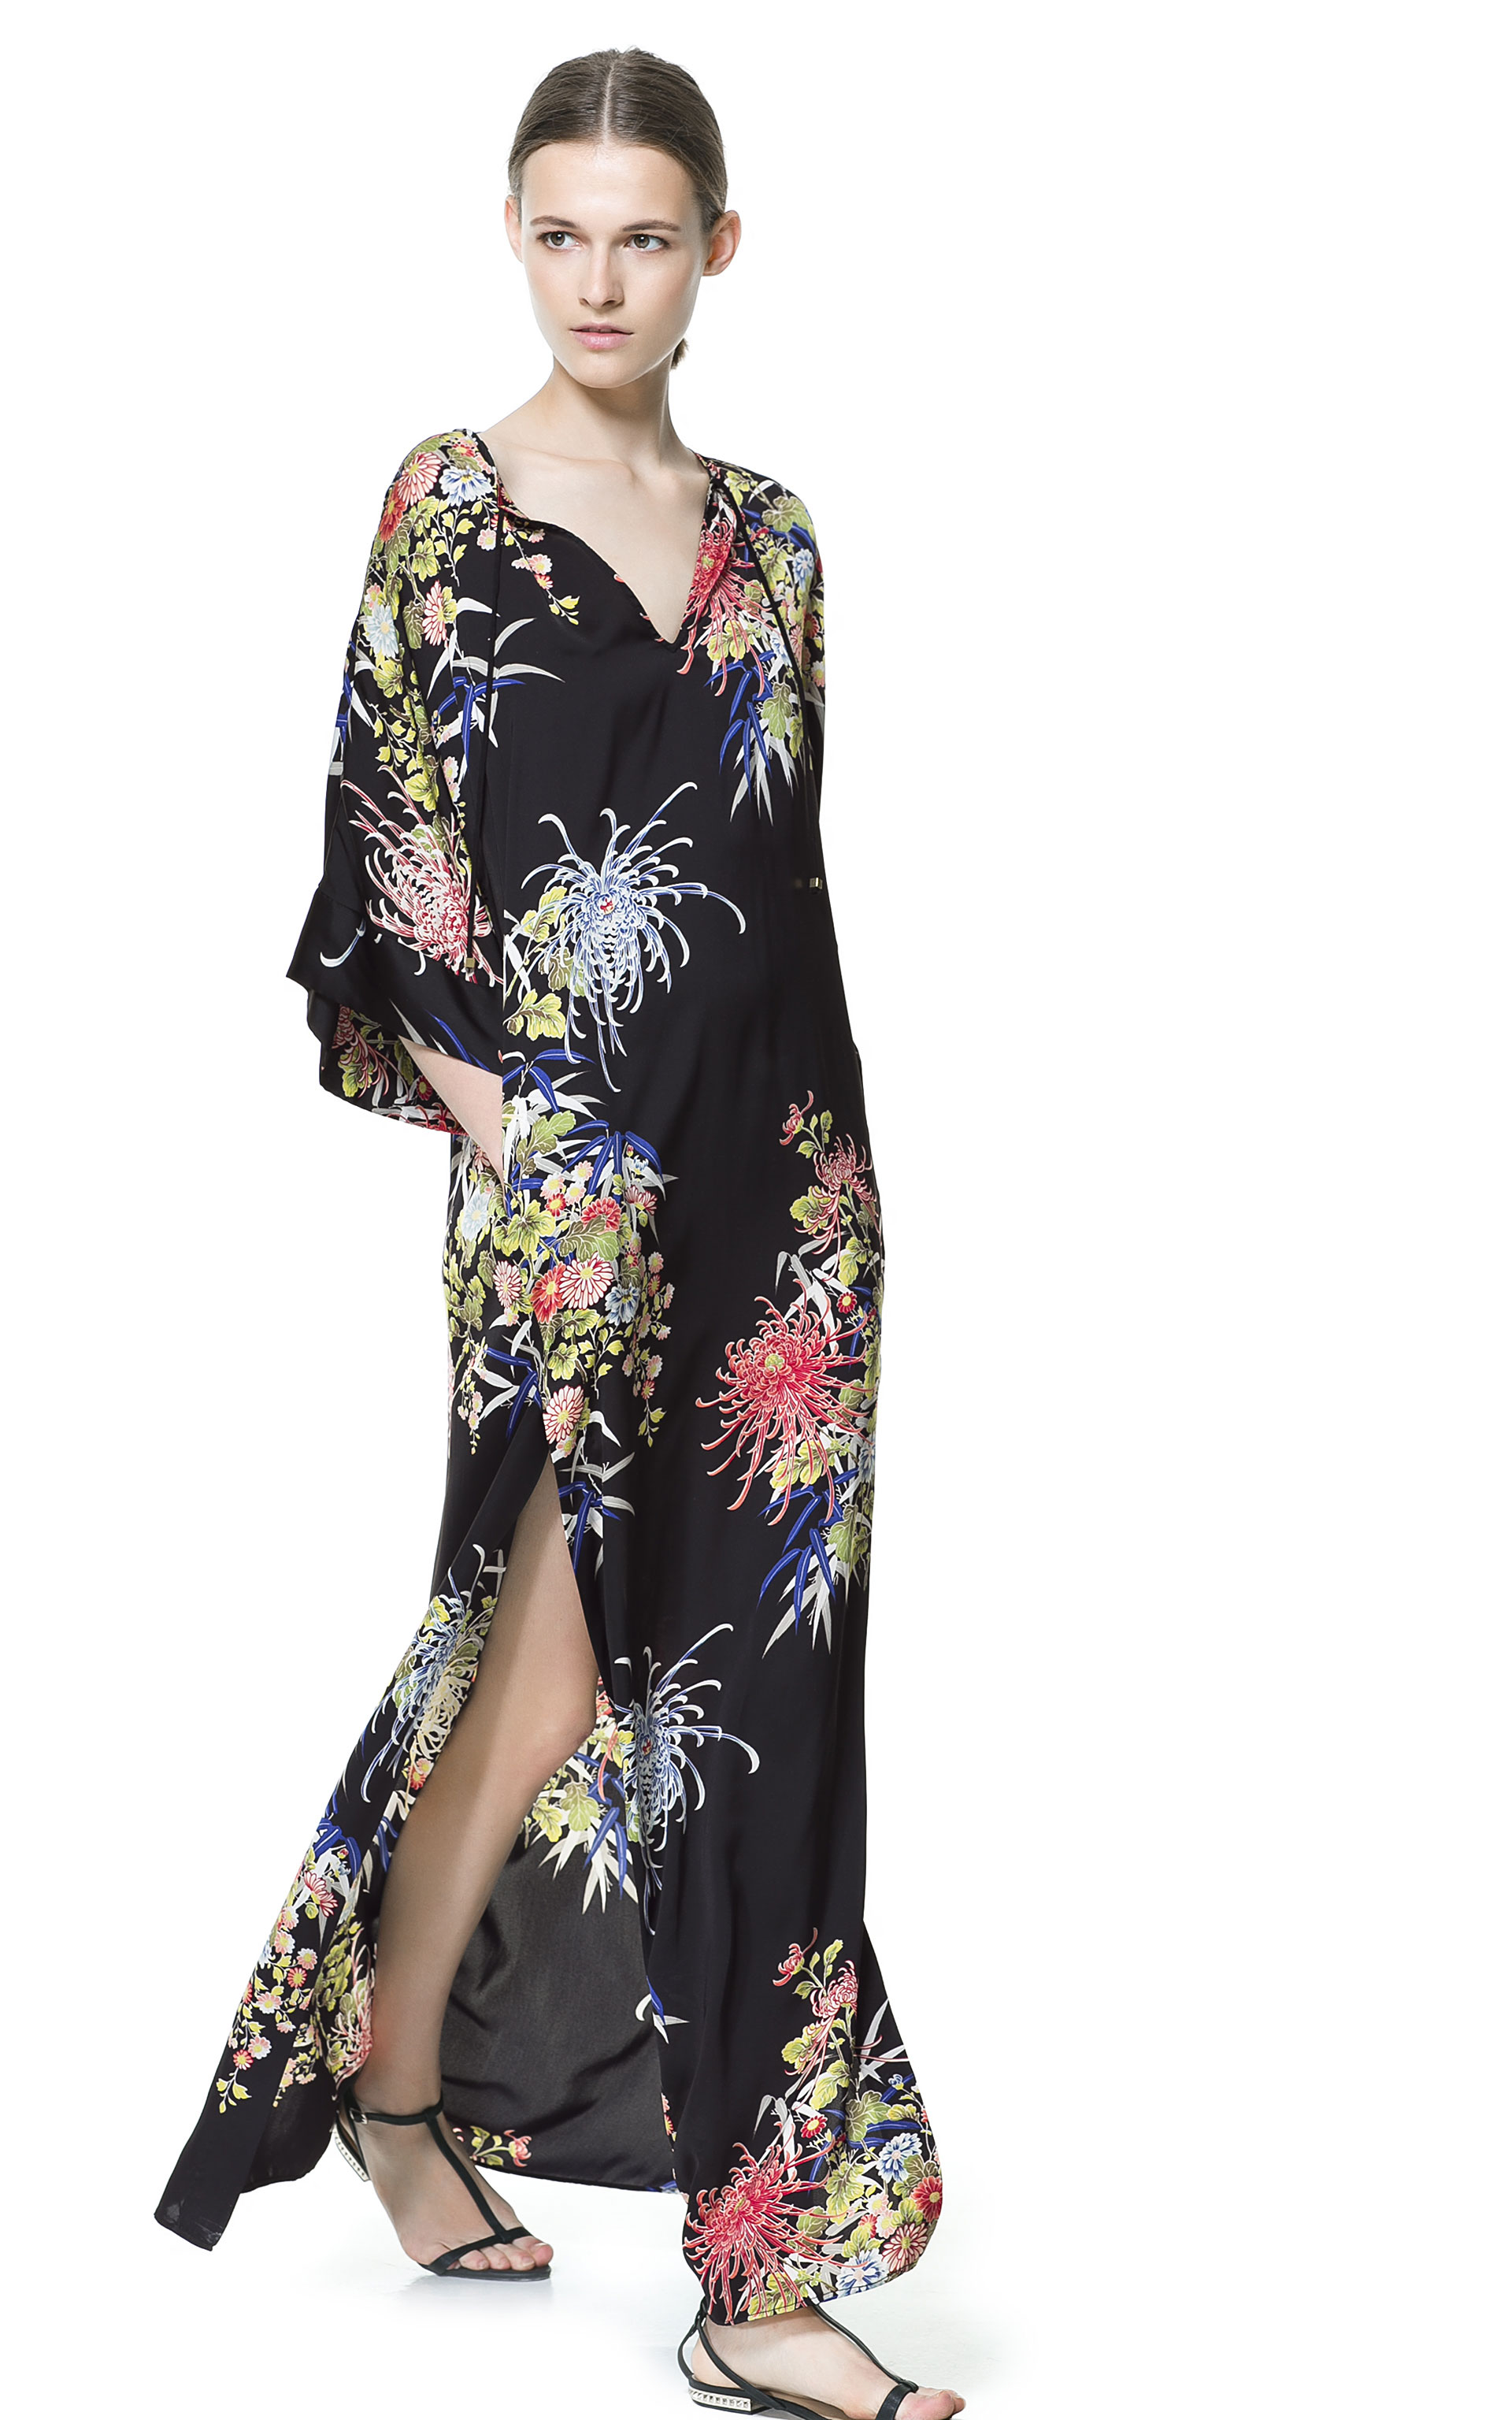 Floral Maxi Dresses: 5 Gorgeous Styles That Cost Less Than $150